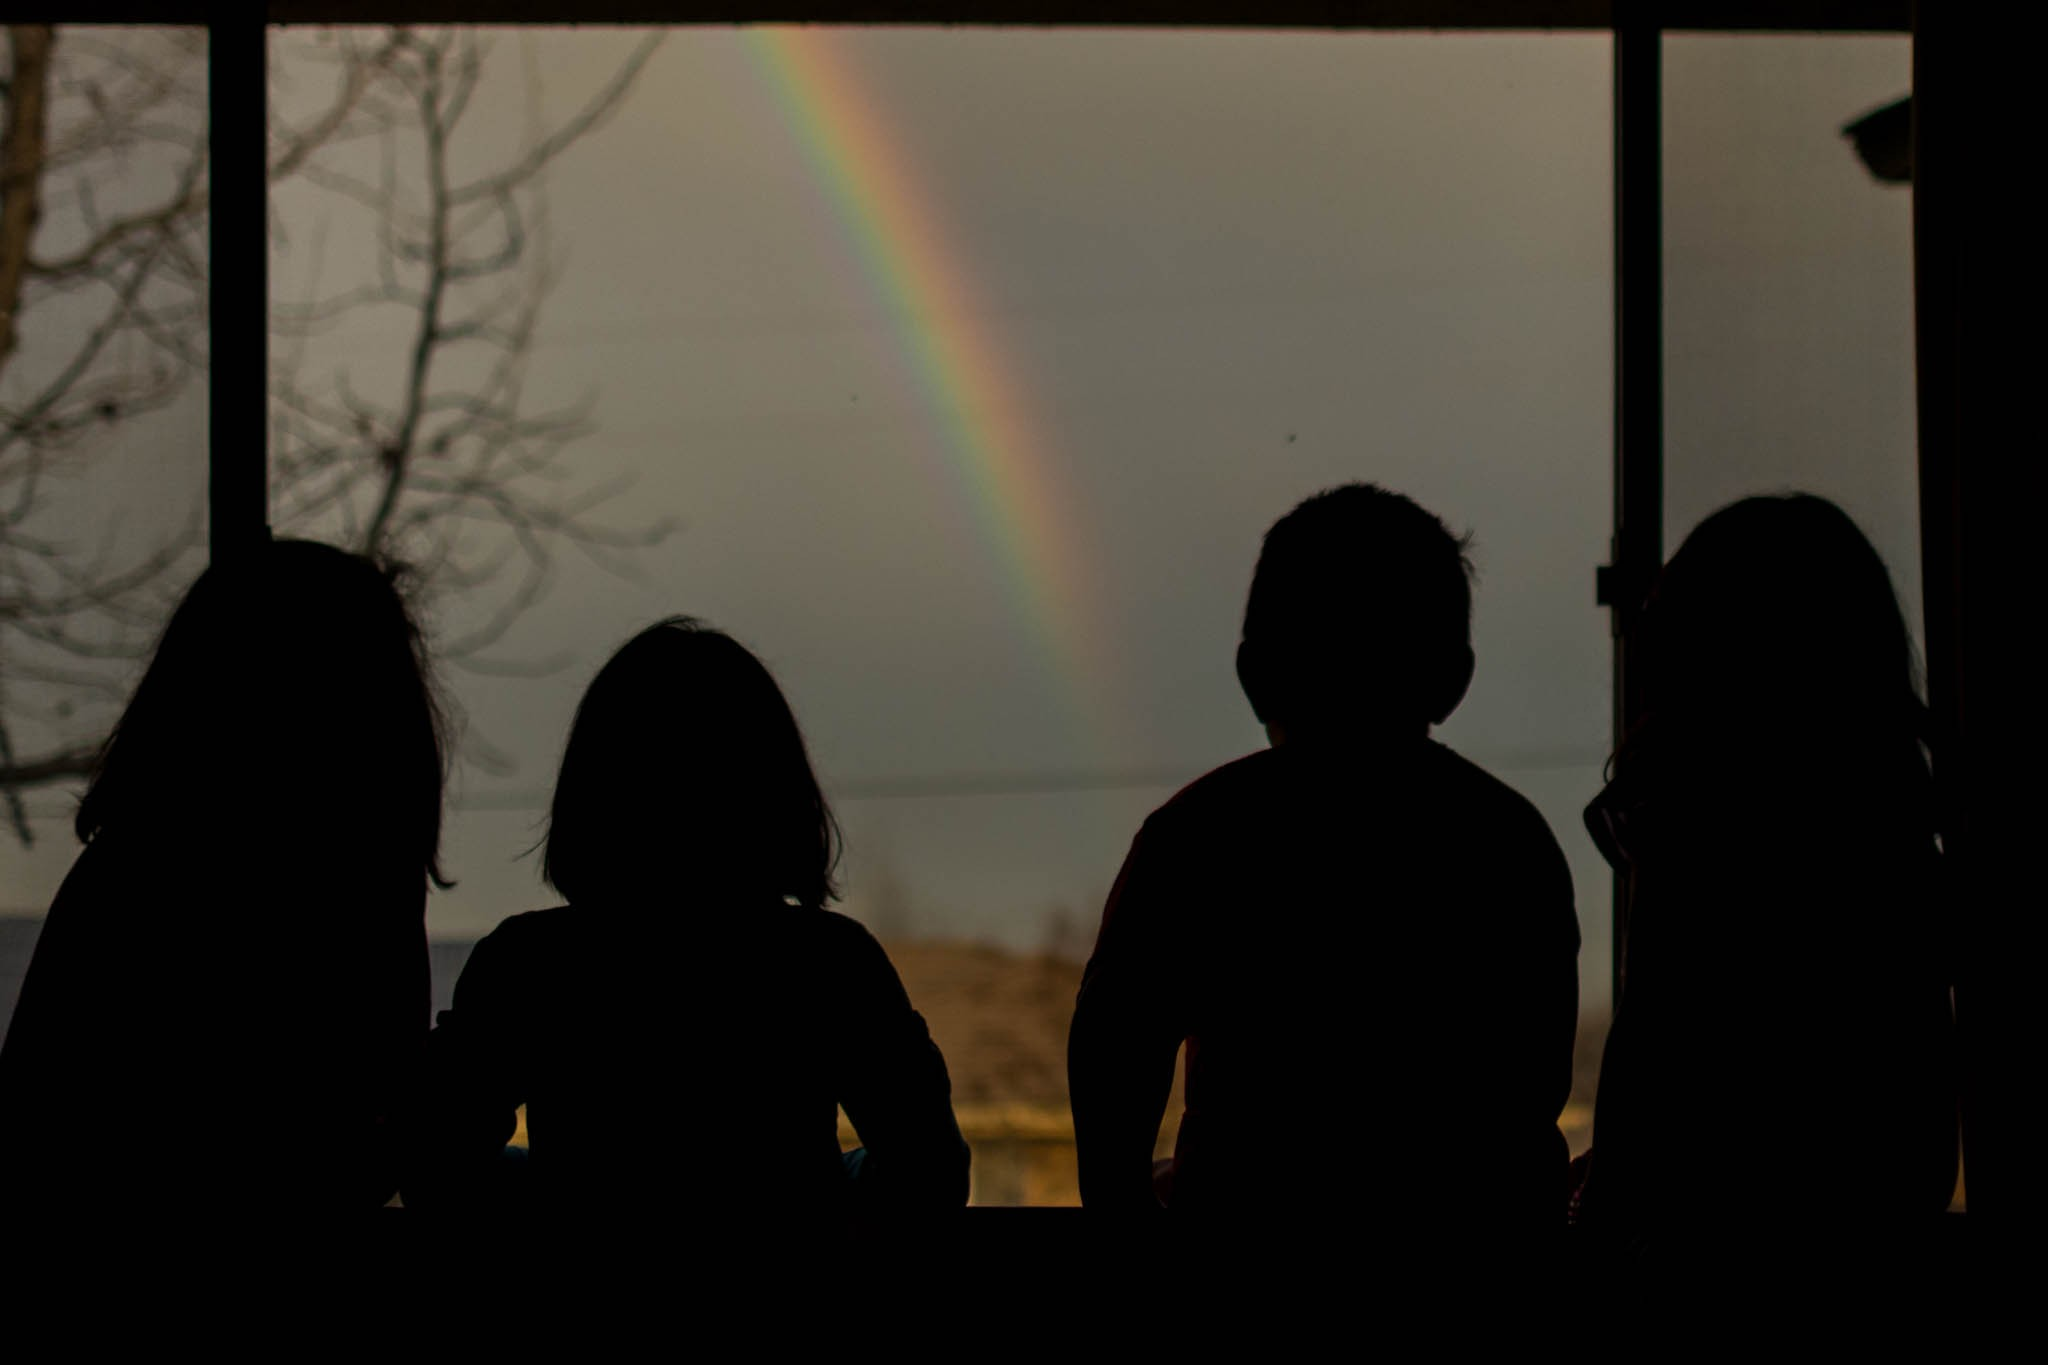 silhouette of kids looking at rainbow documentary candid family photography